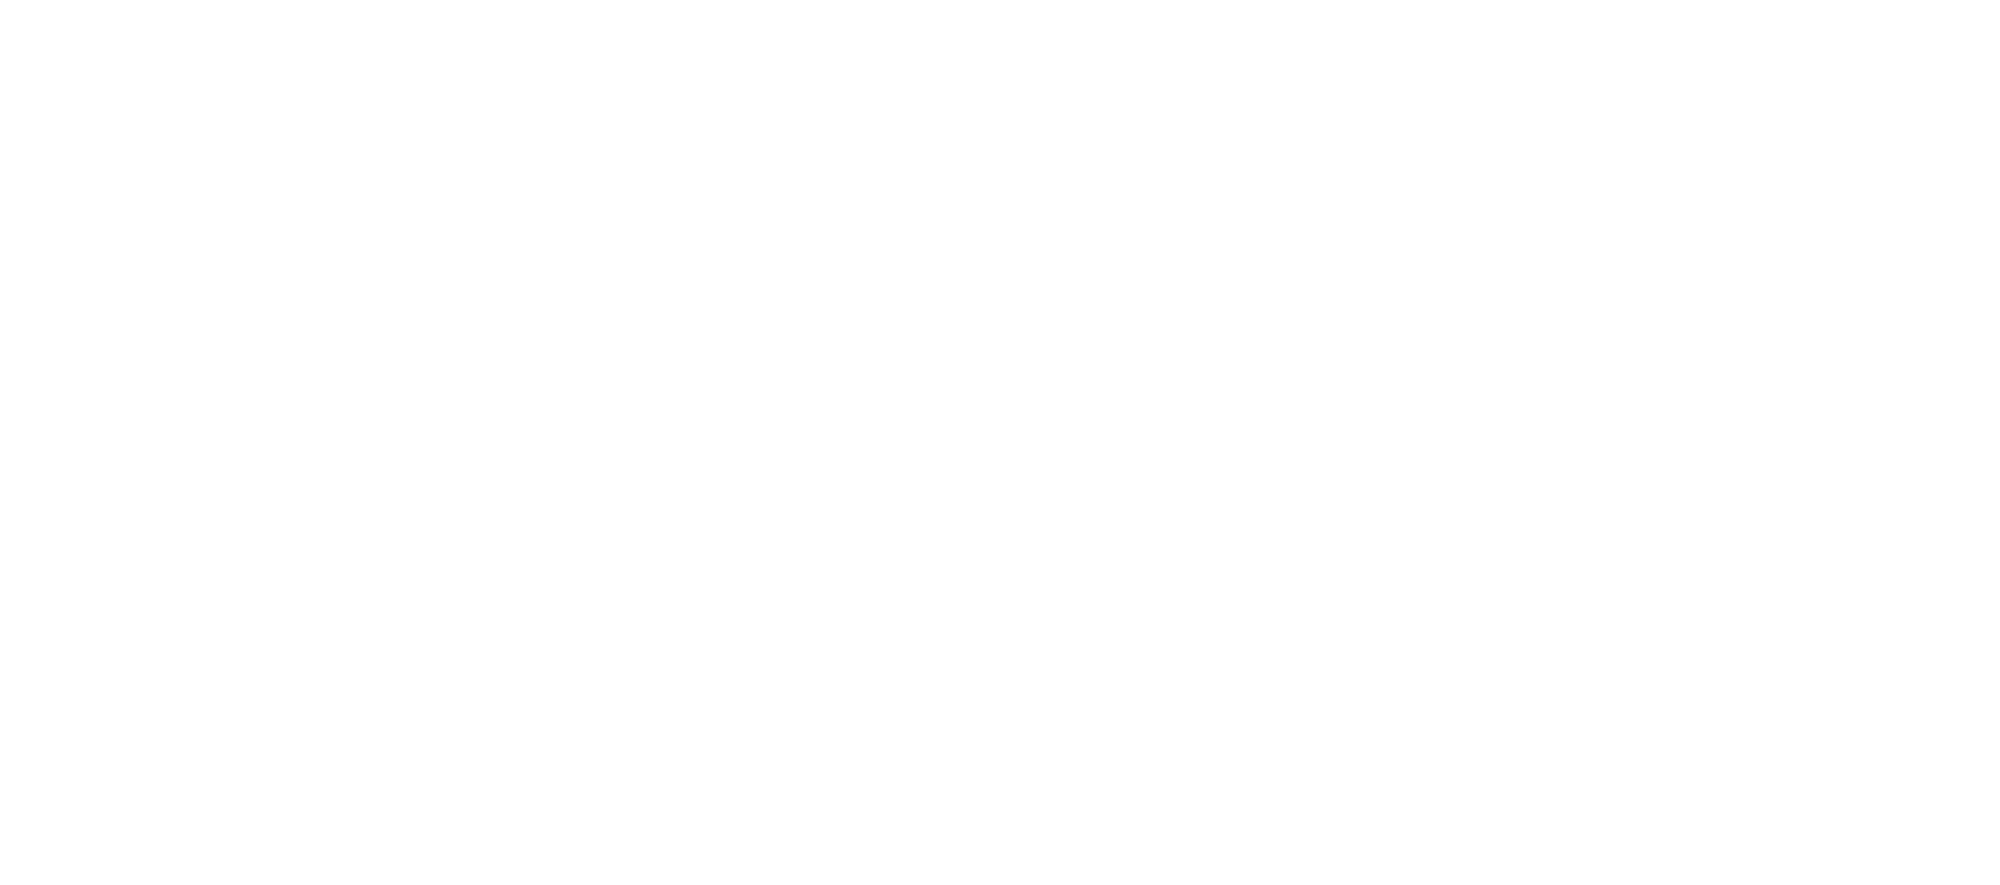 Mike Valdes & The Noise-logo-white.png